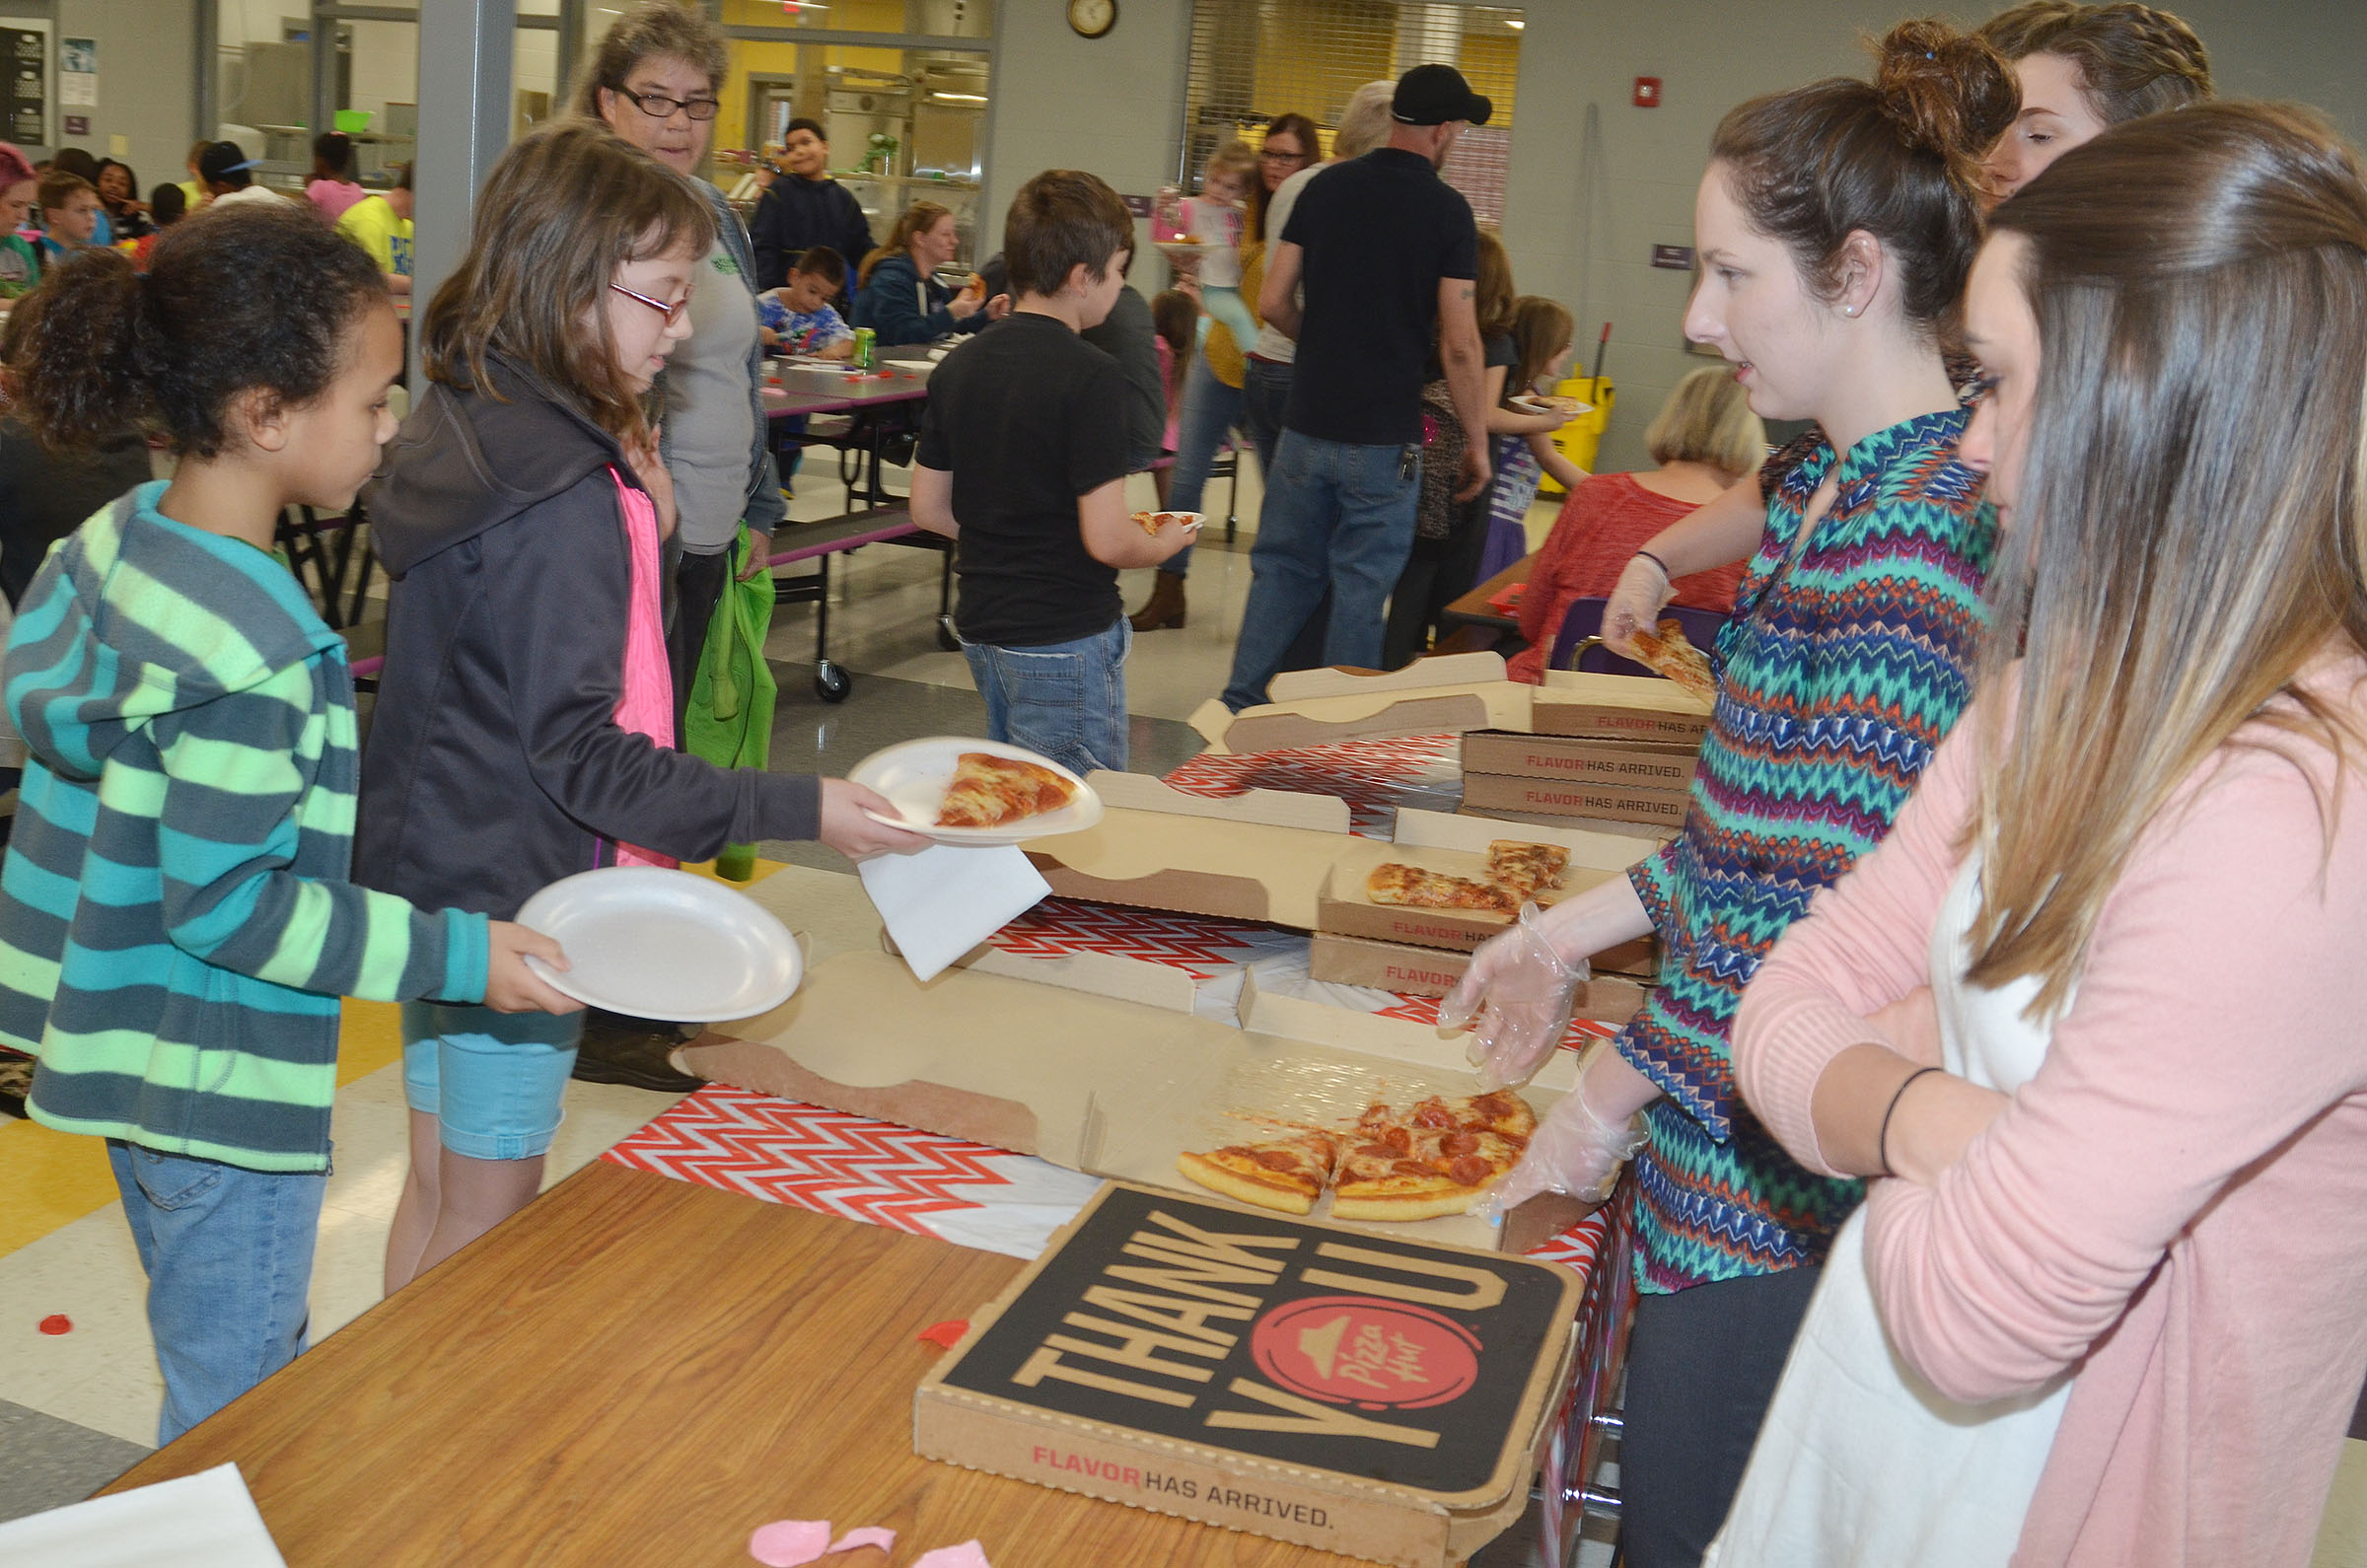 CES students are served pizza.